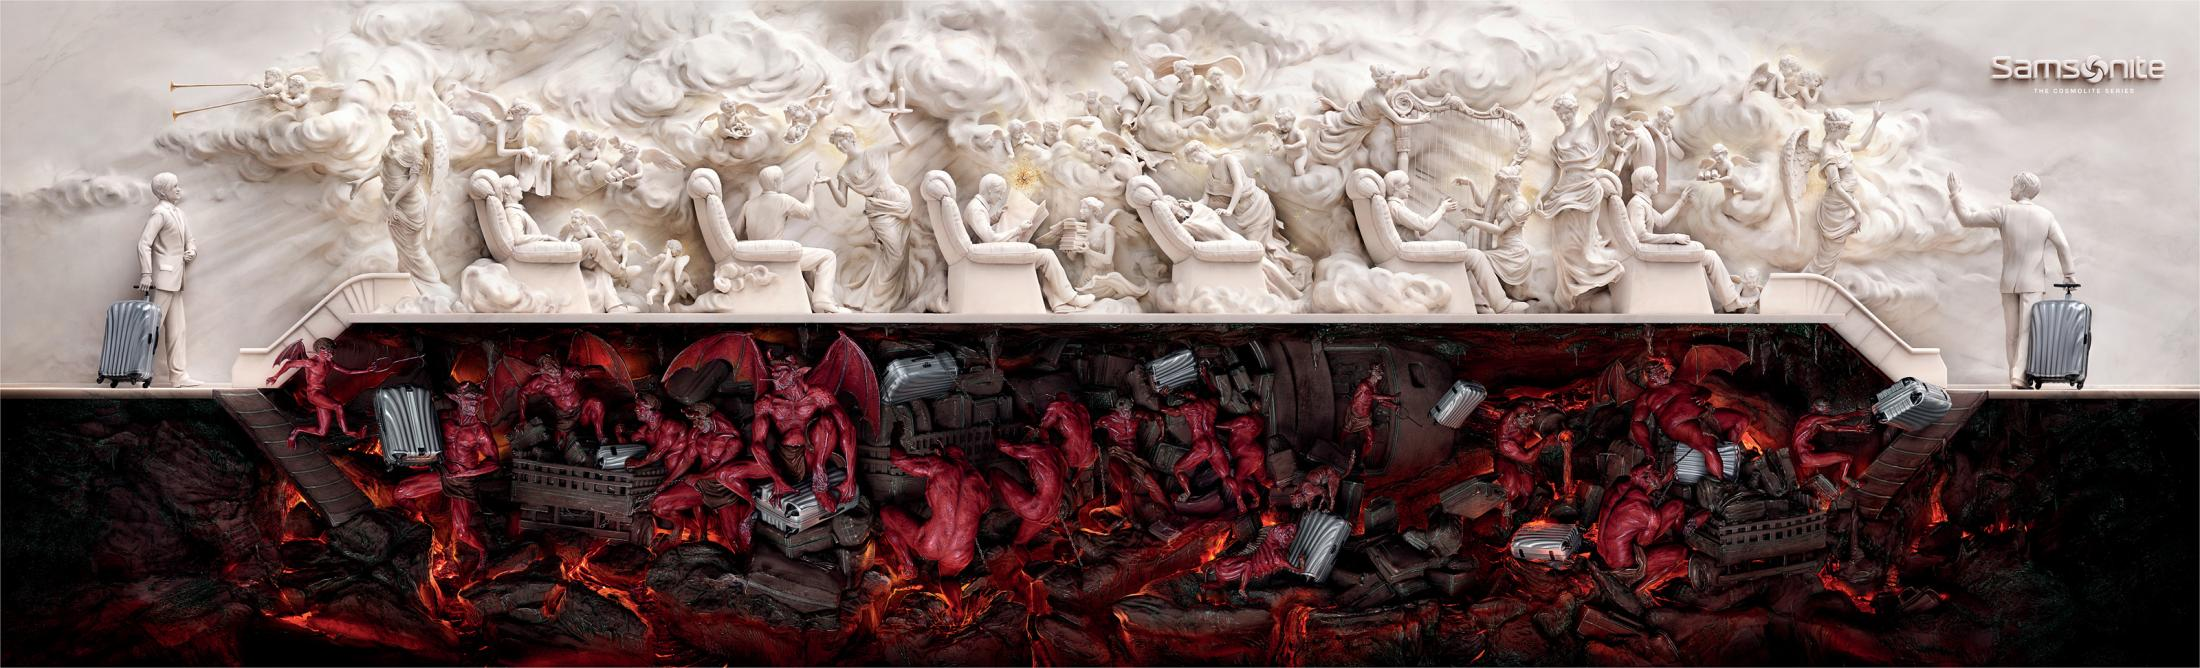 Samsonite Outdoor Ad -  Heaven and Hell